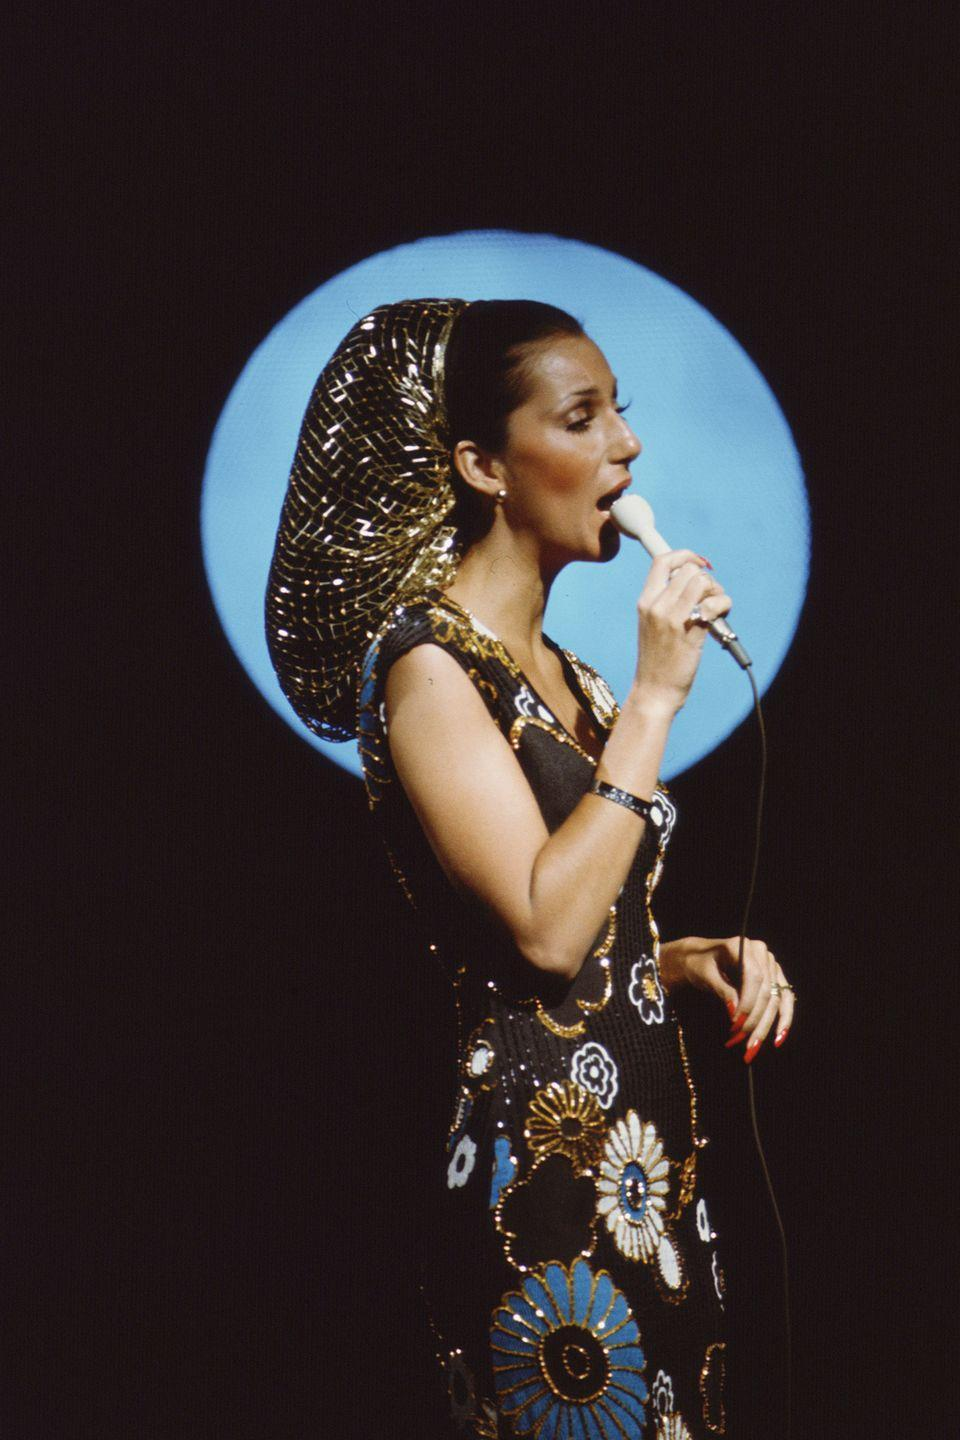 <p>She sings into a microphone for the television variety show <em>The Sonny and Cher Comedy Hour</em>, wearing a bedazzled floral dress and a golden hair net.</p>